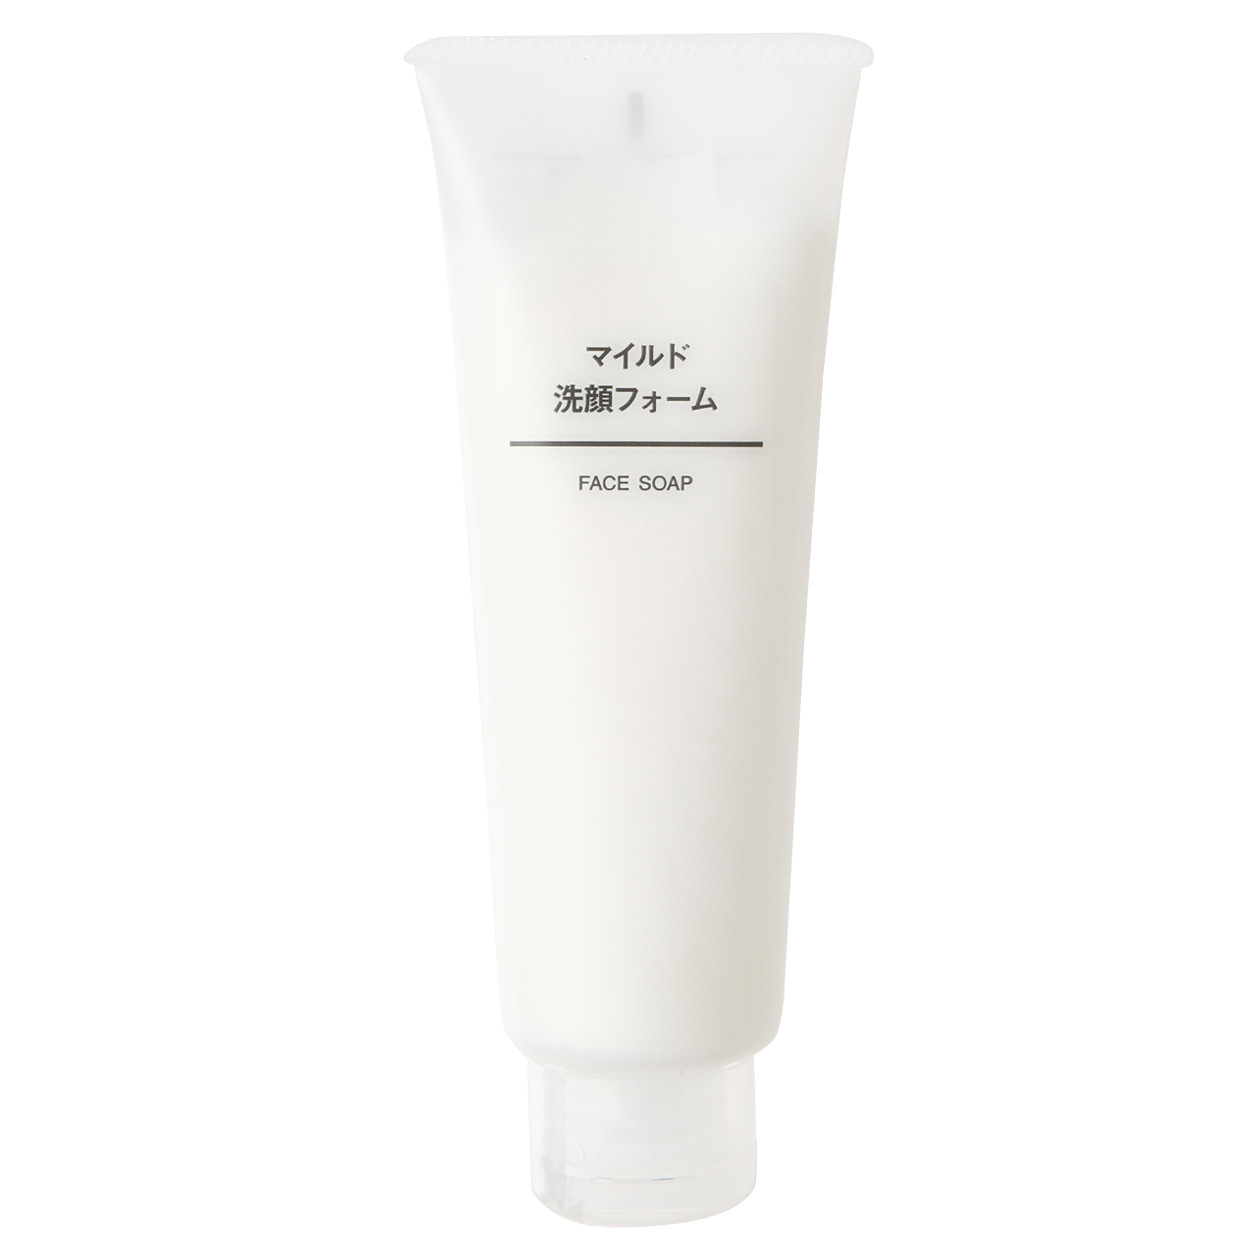 Face Soap - 120g